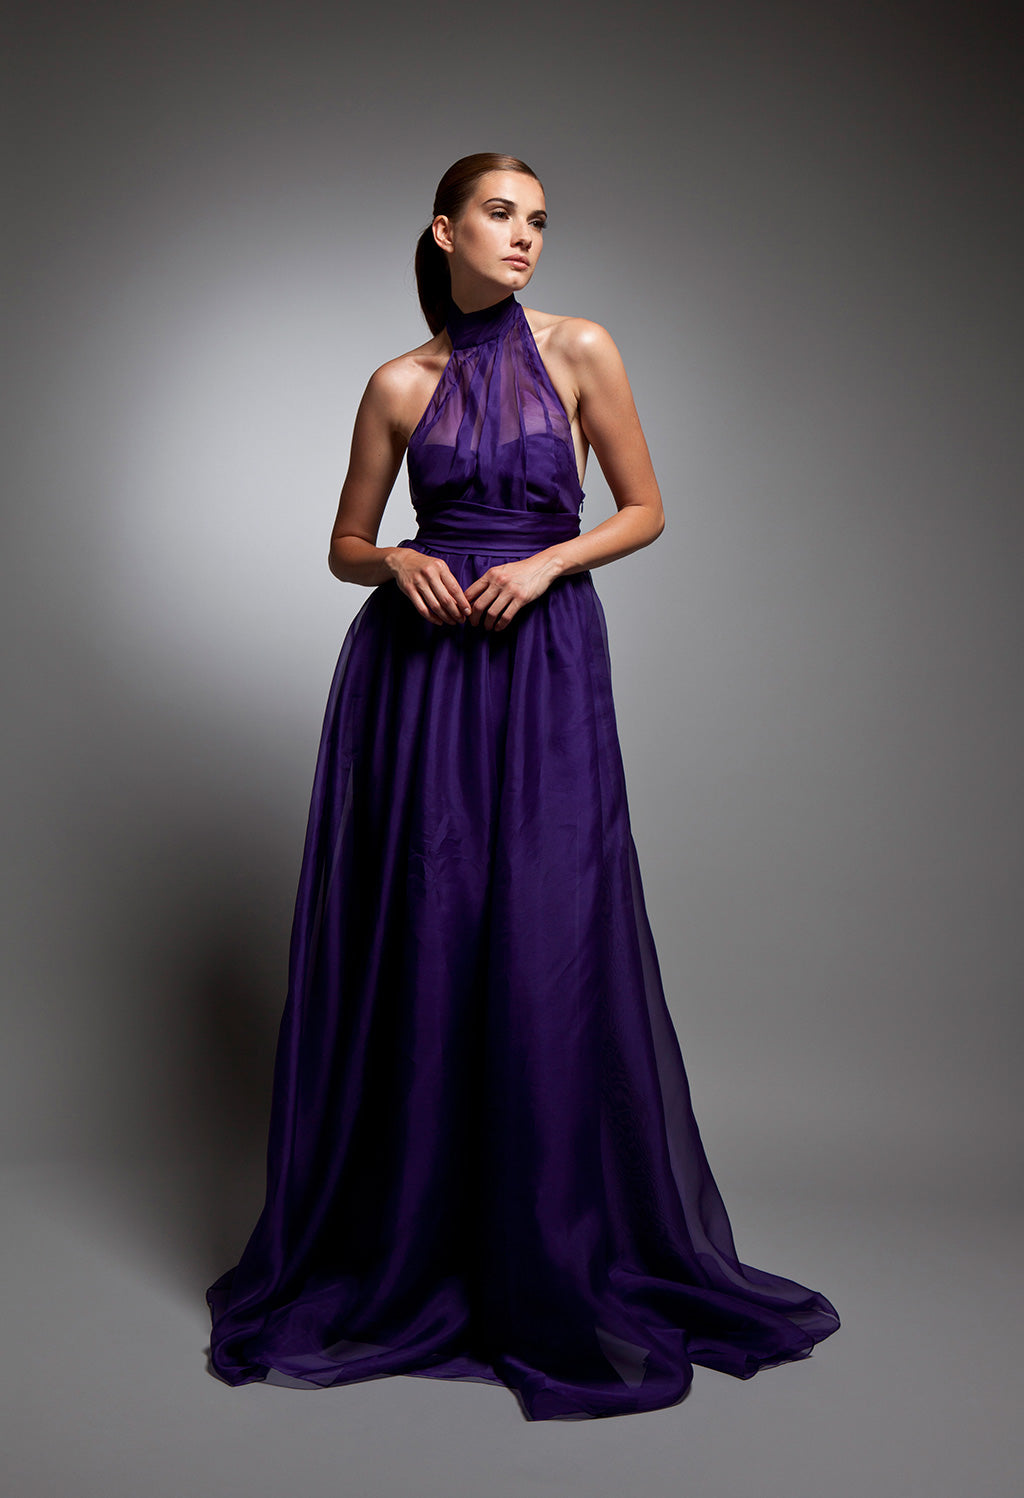 Helena - Vivid purple silk organza gown